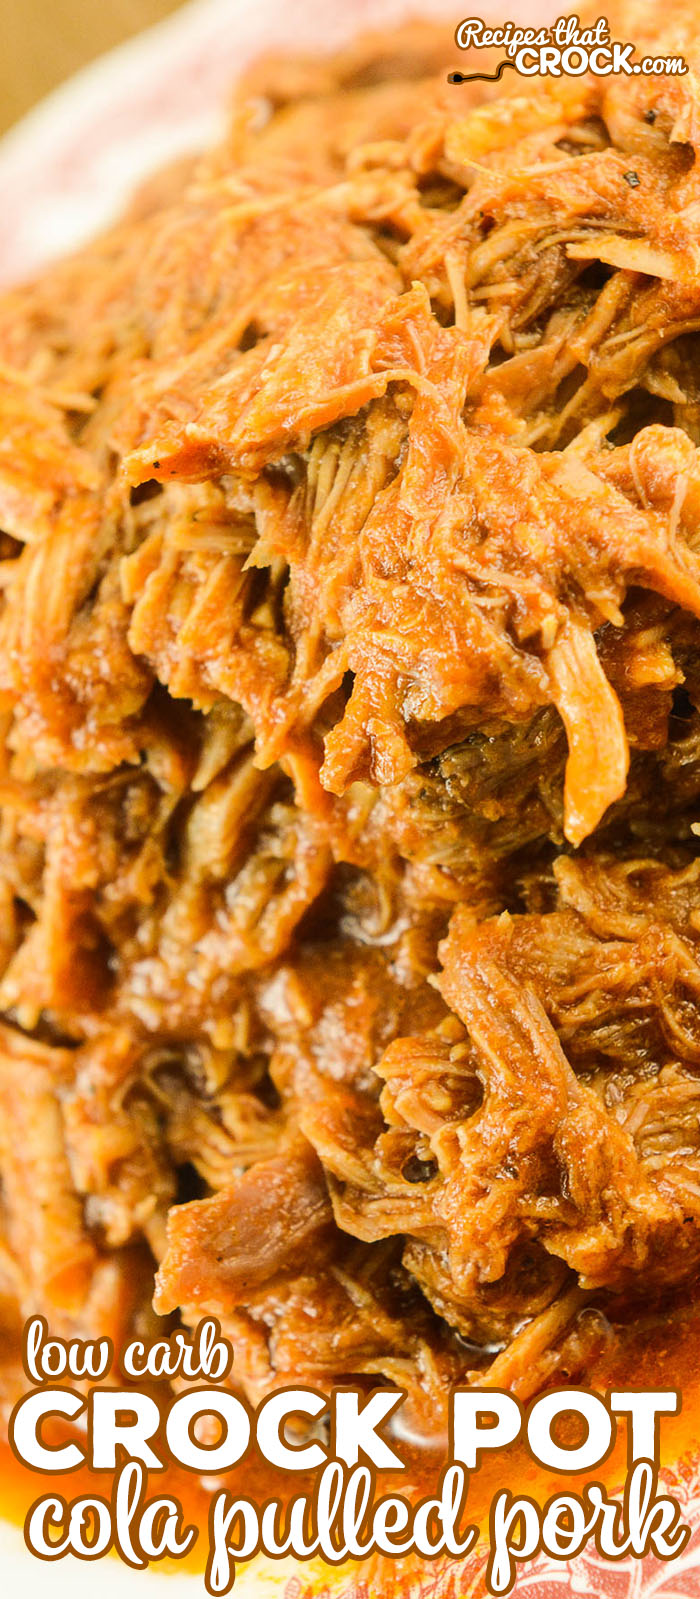 Are you looking for a simple way to make incredible pulled pork every time? Our Crock Pot Cola Pulled Pork is so easy to throw together for family dinner! This recipe is easily made low carb (or not if you prefer) AND the leftovers freeze well.